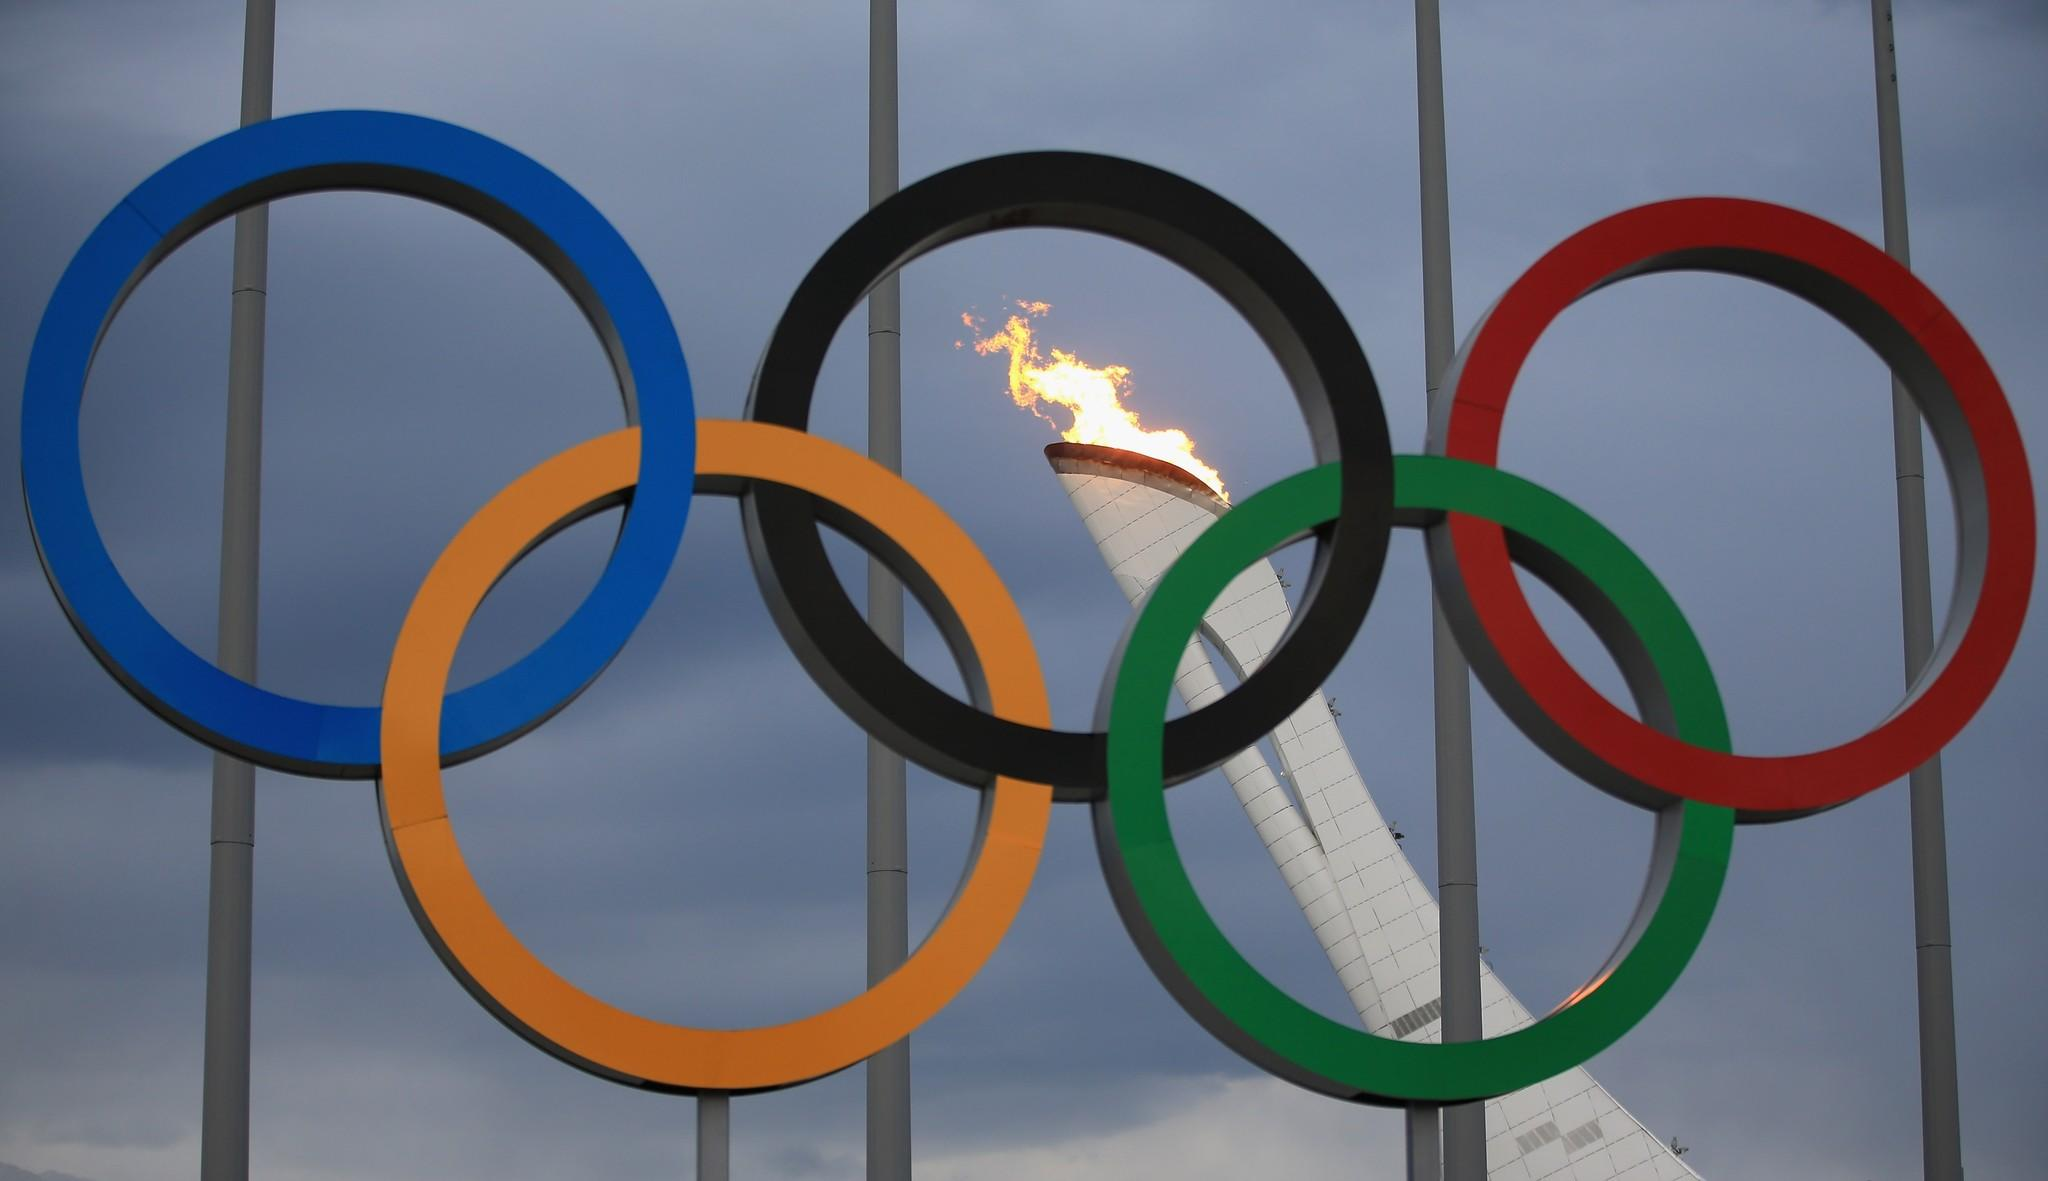 The Olympic cauldron is tested by fire crews at the Sochi 2014 Winter Olympic Park.